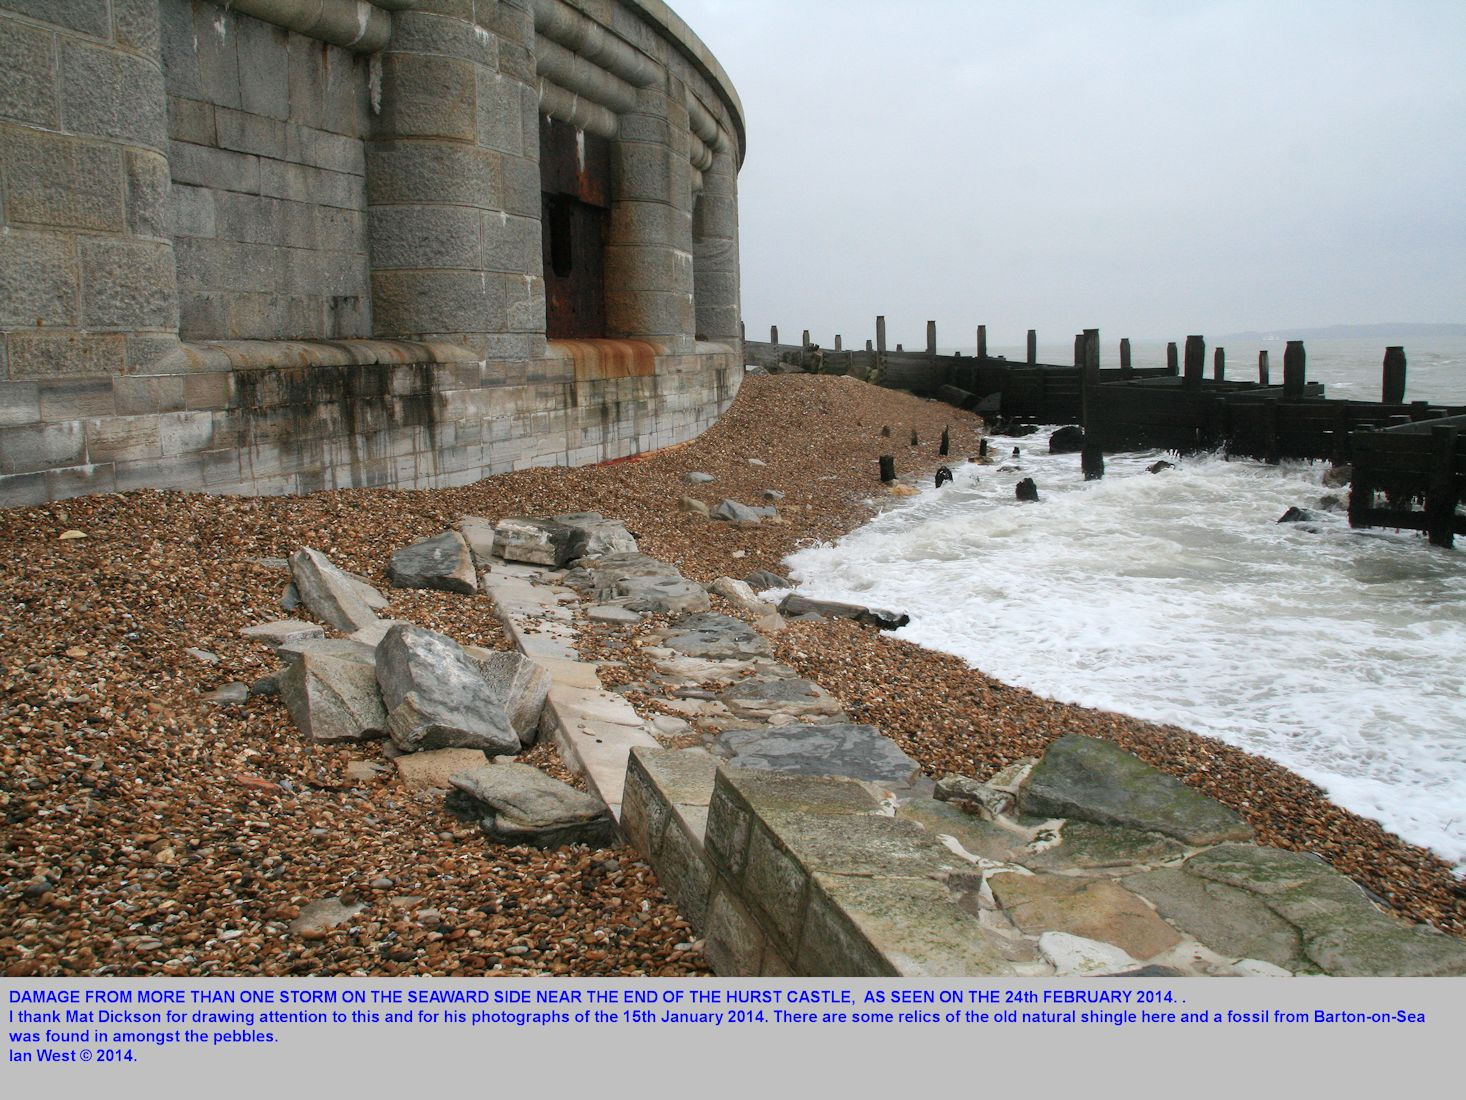 Damage and potential undercutting of the Castle wall, Hurst Spit, Hampshire, 24th February 2014